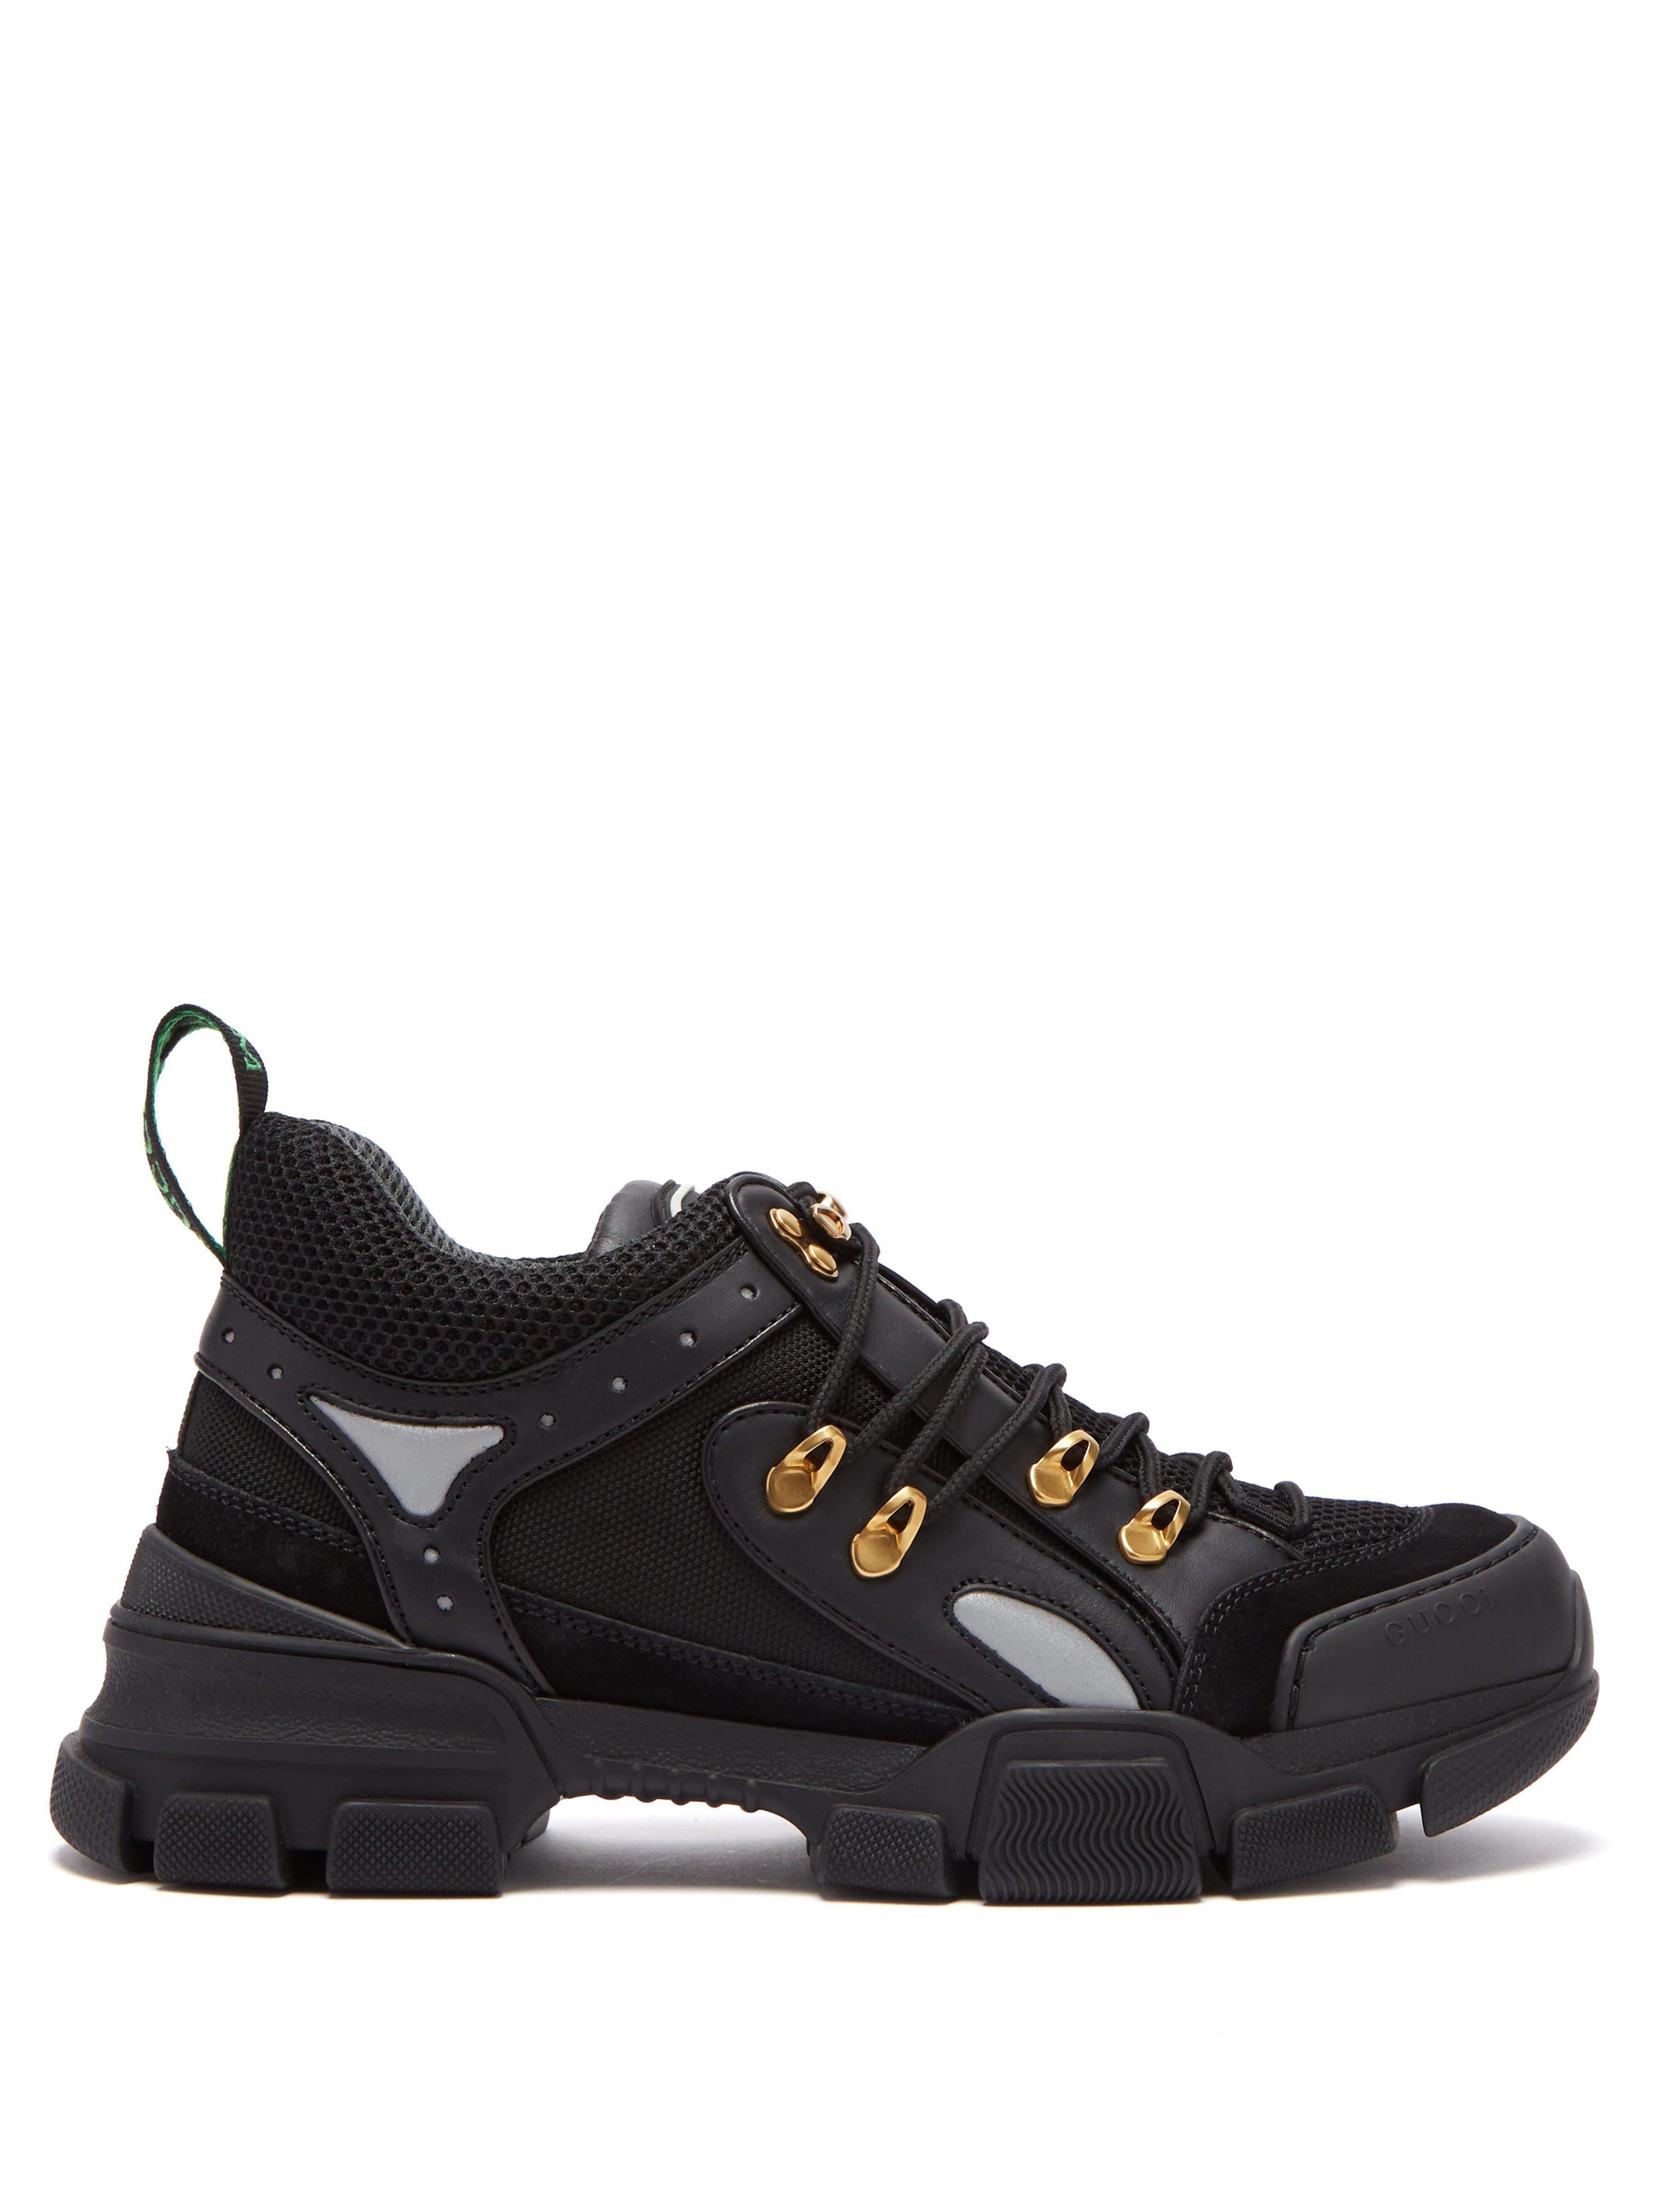 2300413575f3 Gucci Flashtrek Leather Trimmed Trainers in Black - Save 22% - Lyst